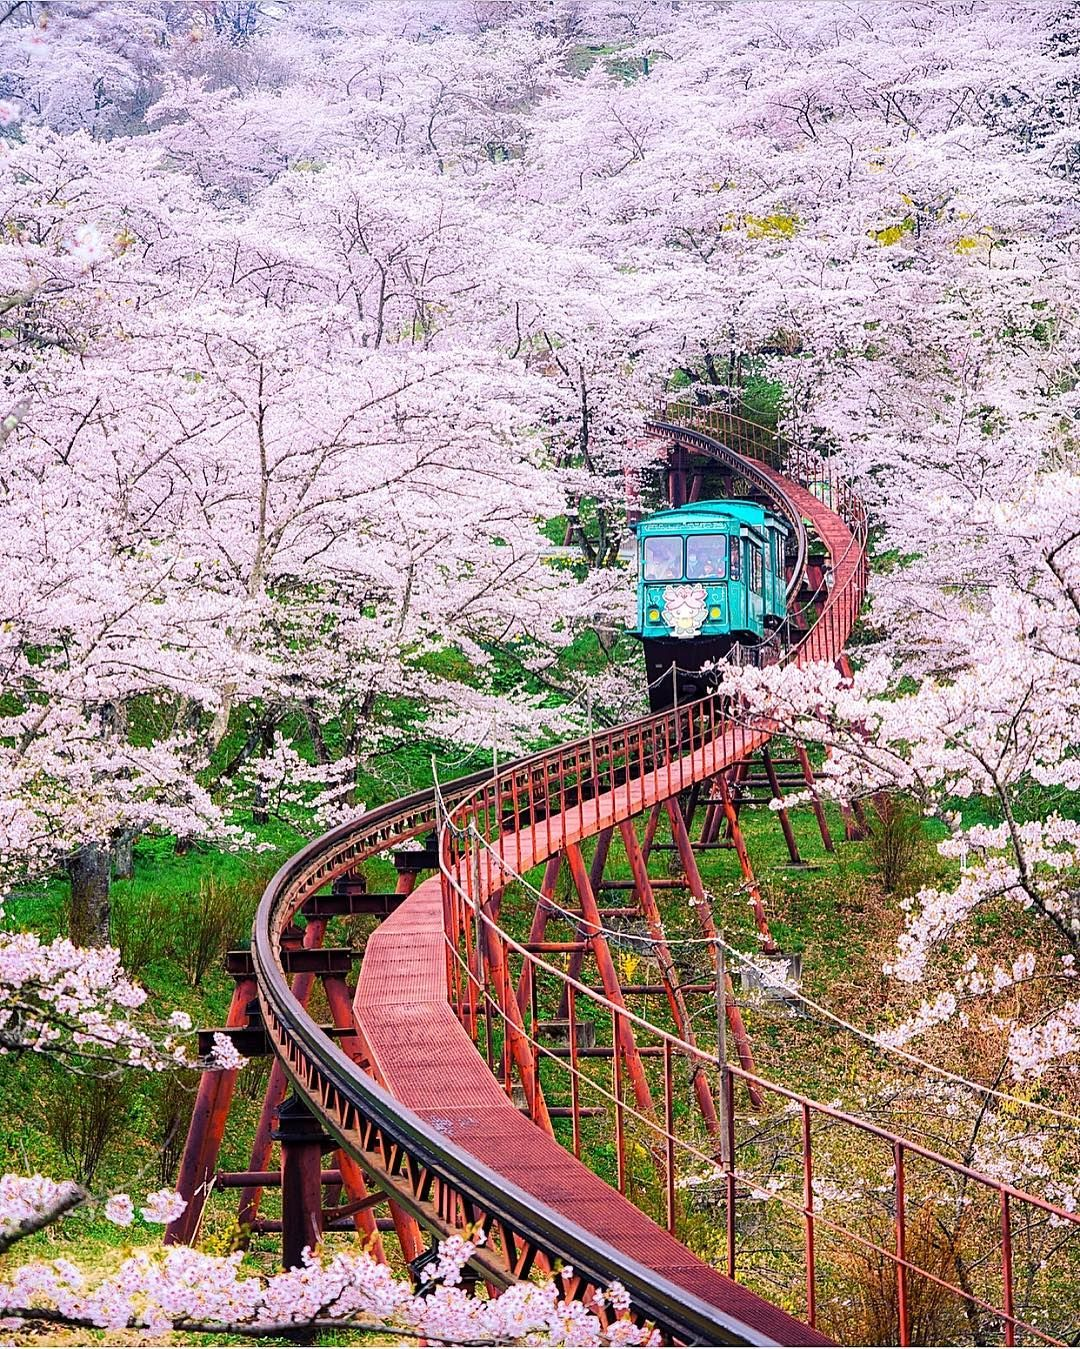 Travel Insurance Options For Traveling Abroad In 2020 Cherry Blossom Japan Japan Travel Photography Japan Travel